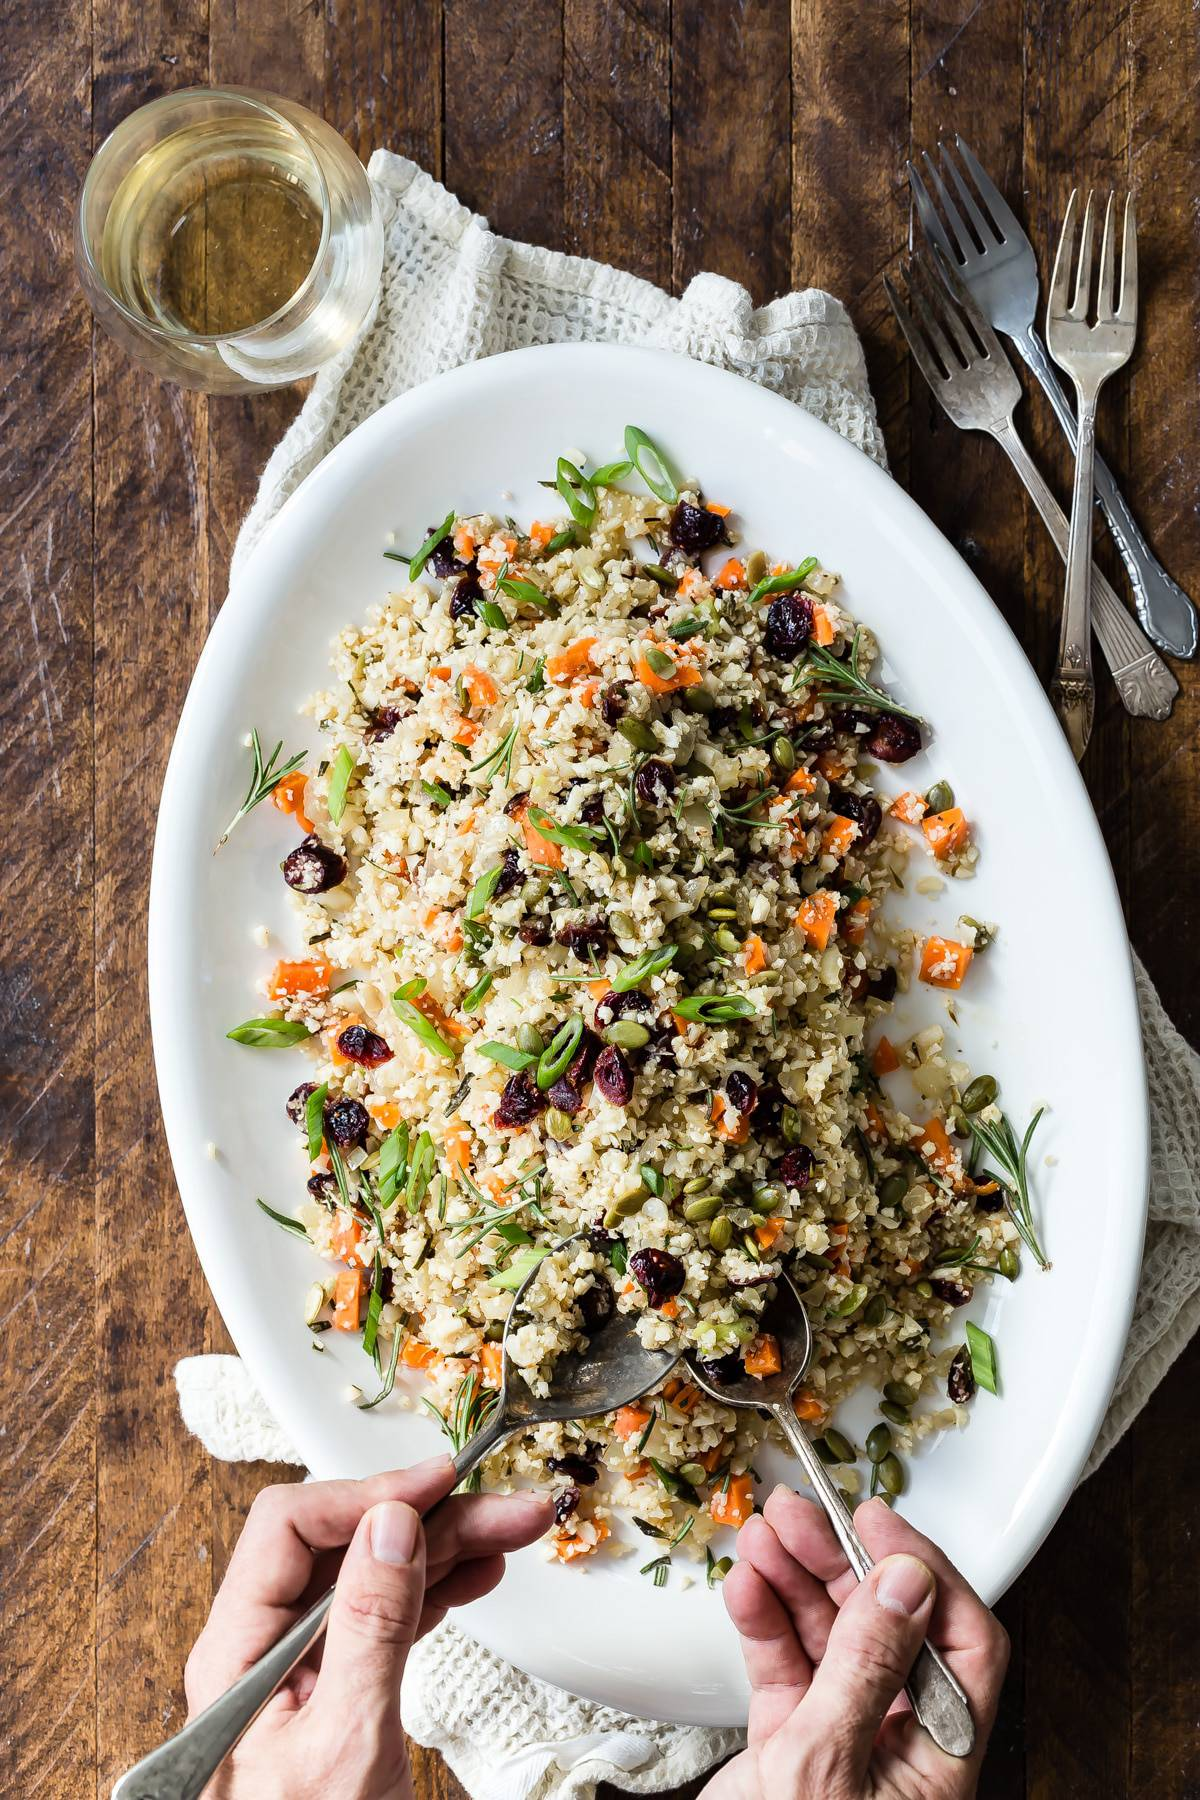 Tasty vegetarian side dish made with cauliflower rice, cranberries and pumpkin seeds! Take this to your Thanksgiving or friends giving celebration!